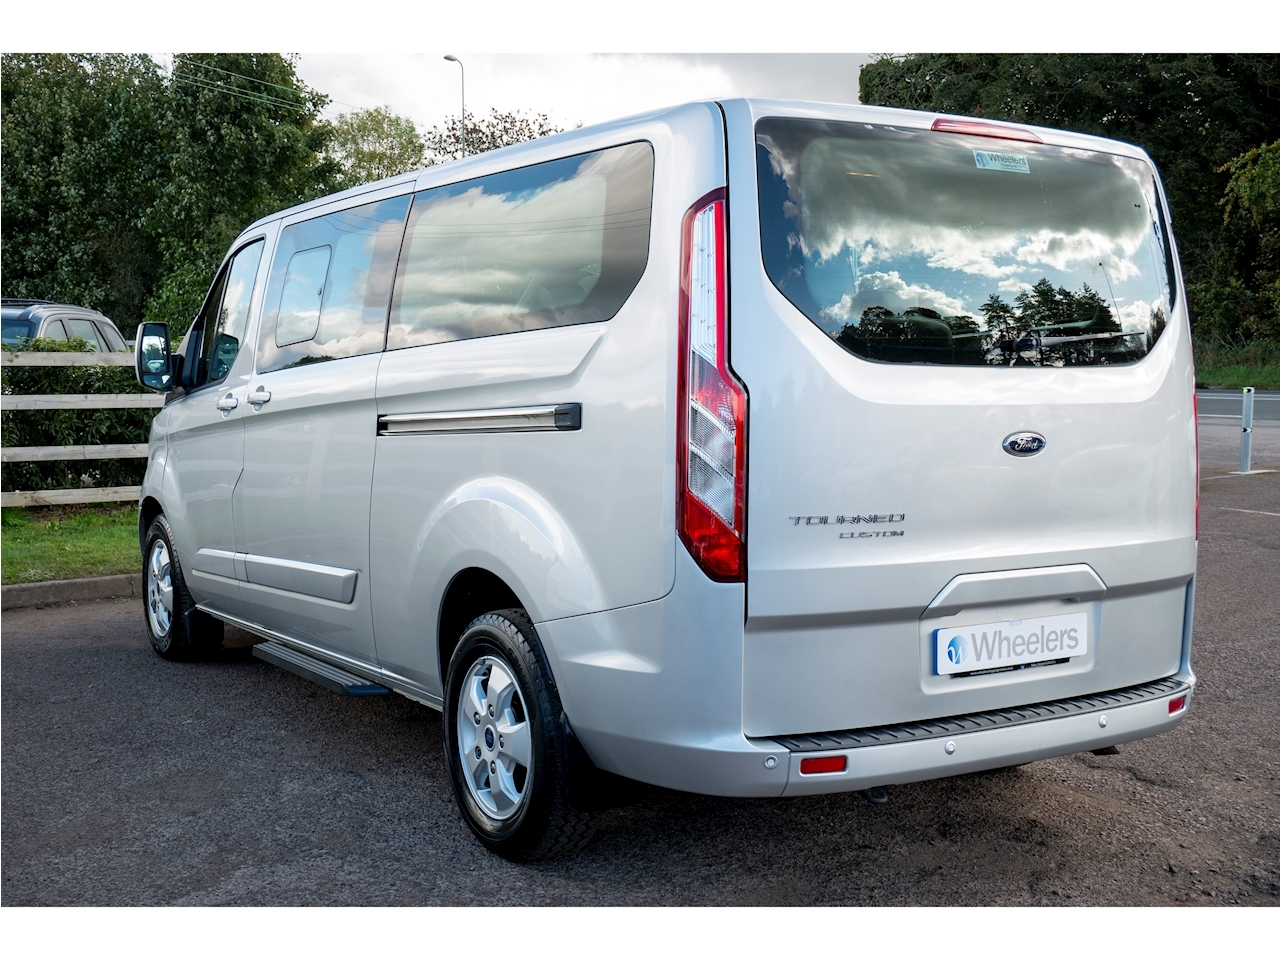 Ford Tourneo Custom 310 Titanium Tdci Mpv 2.0 Manual Diesel